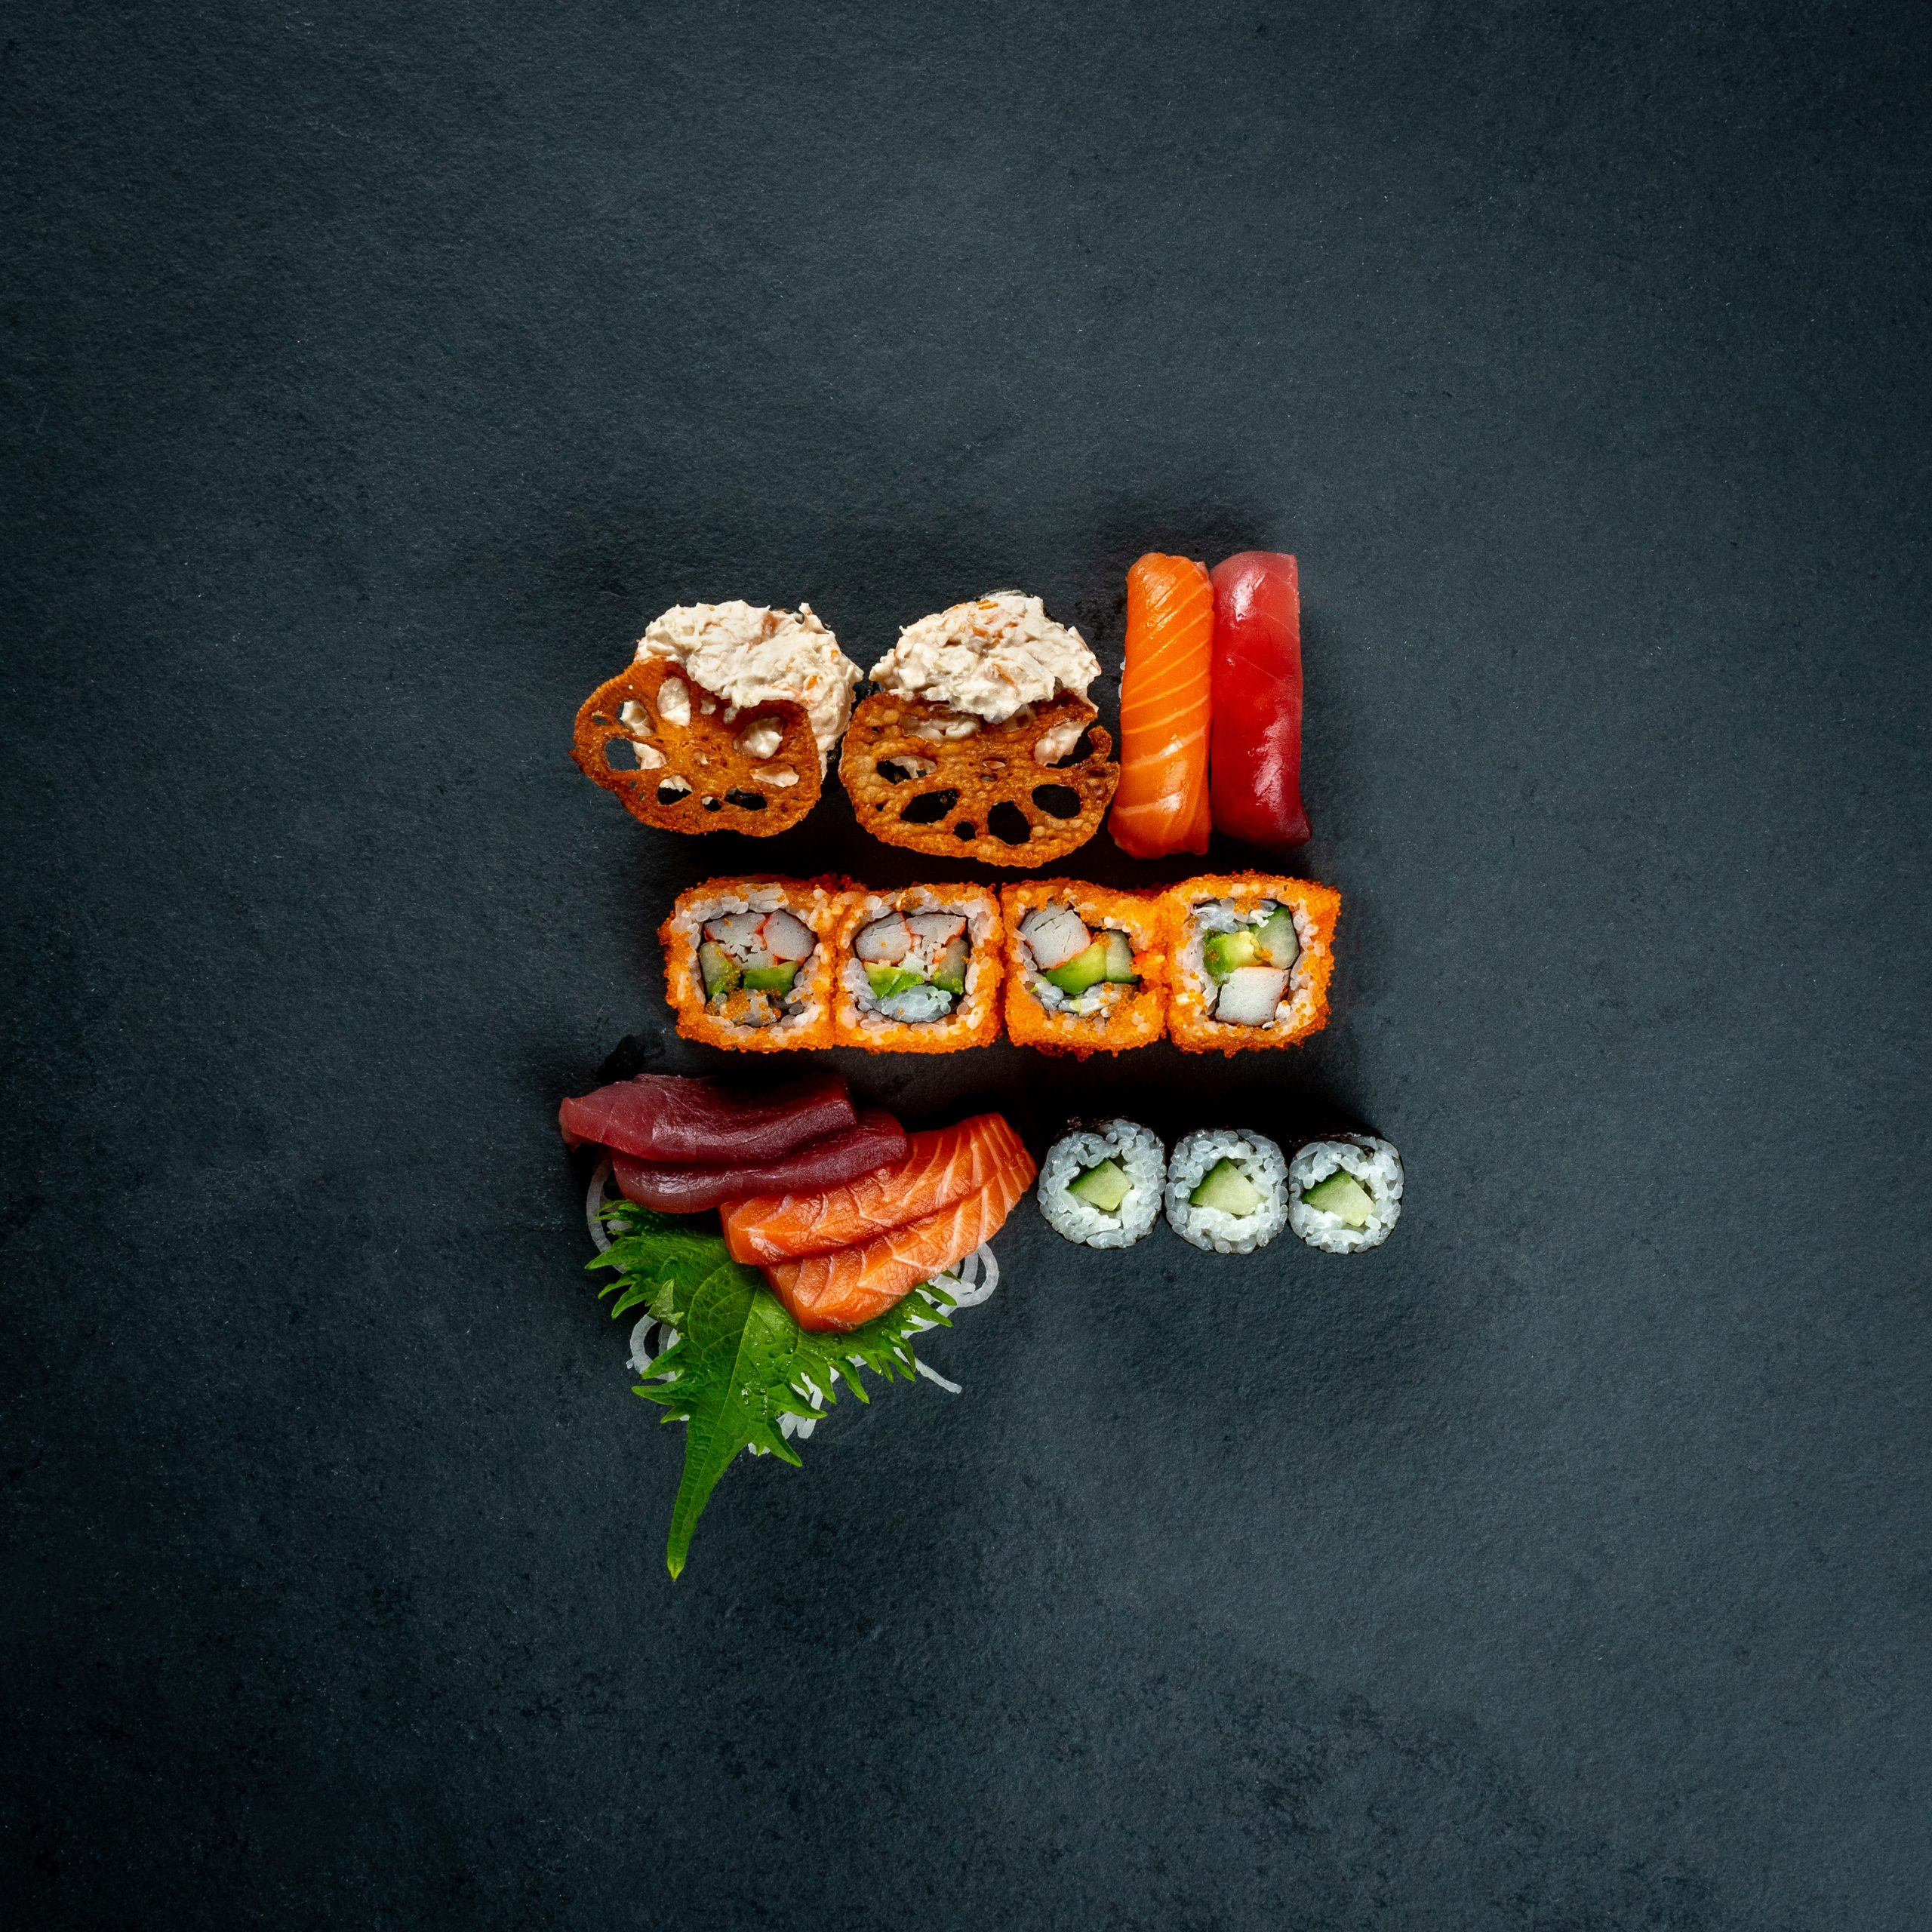 Food Photography - Sushi San Zeist - Done by Deon